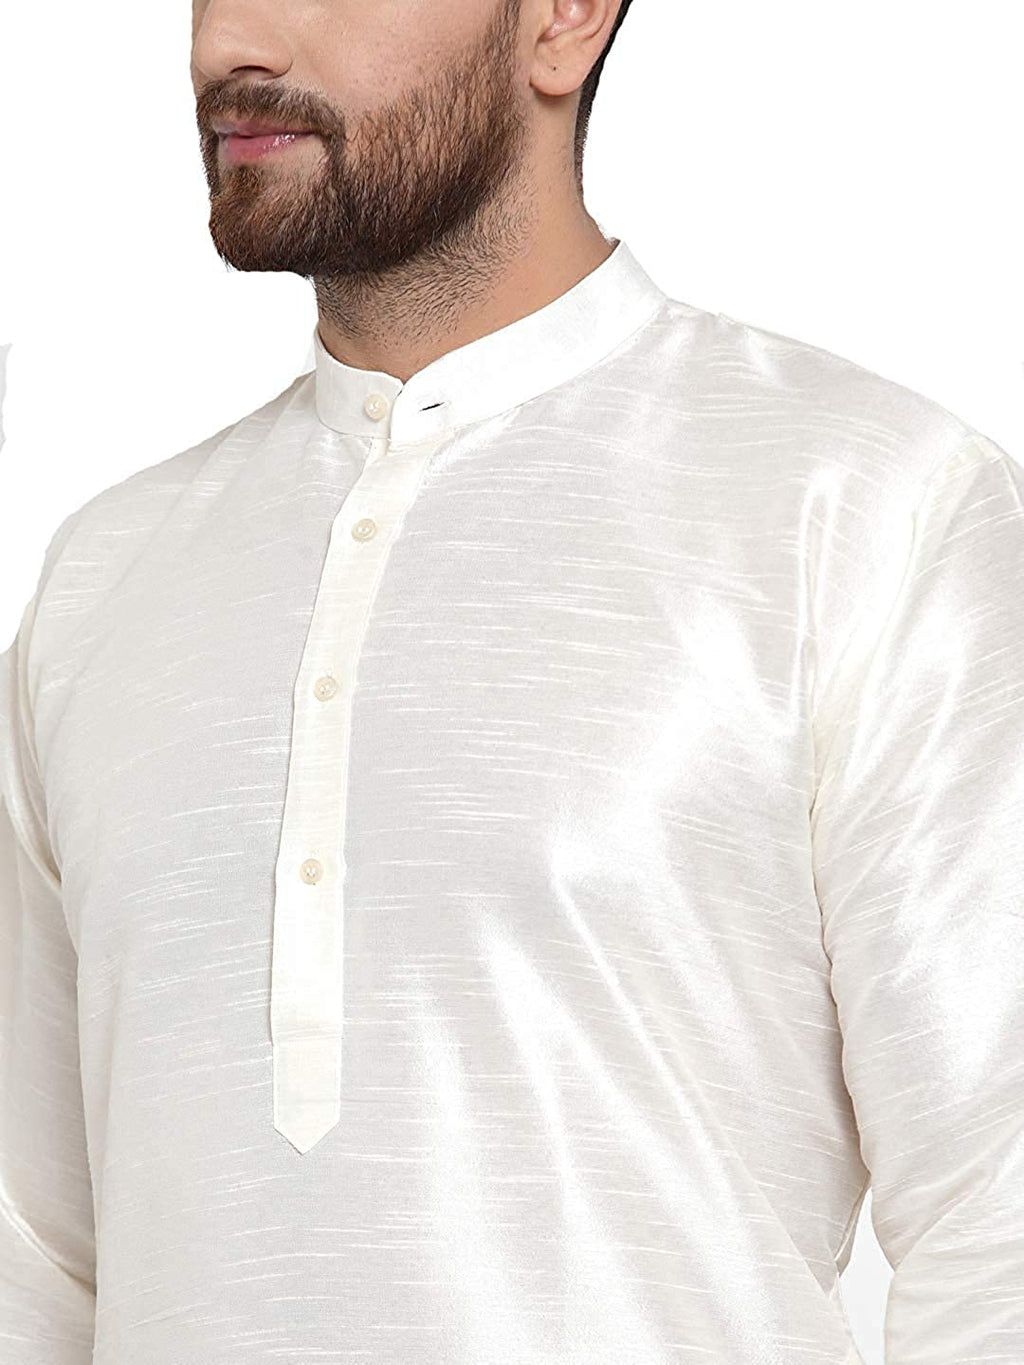 Men's Silk White Kurta Pyjama